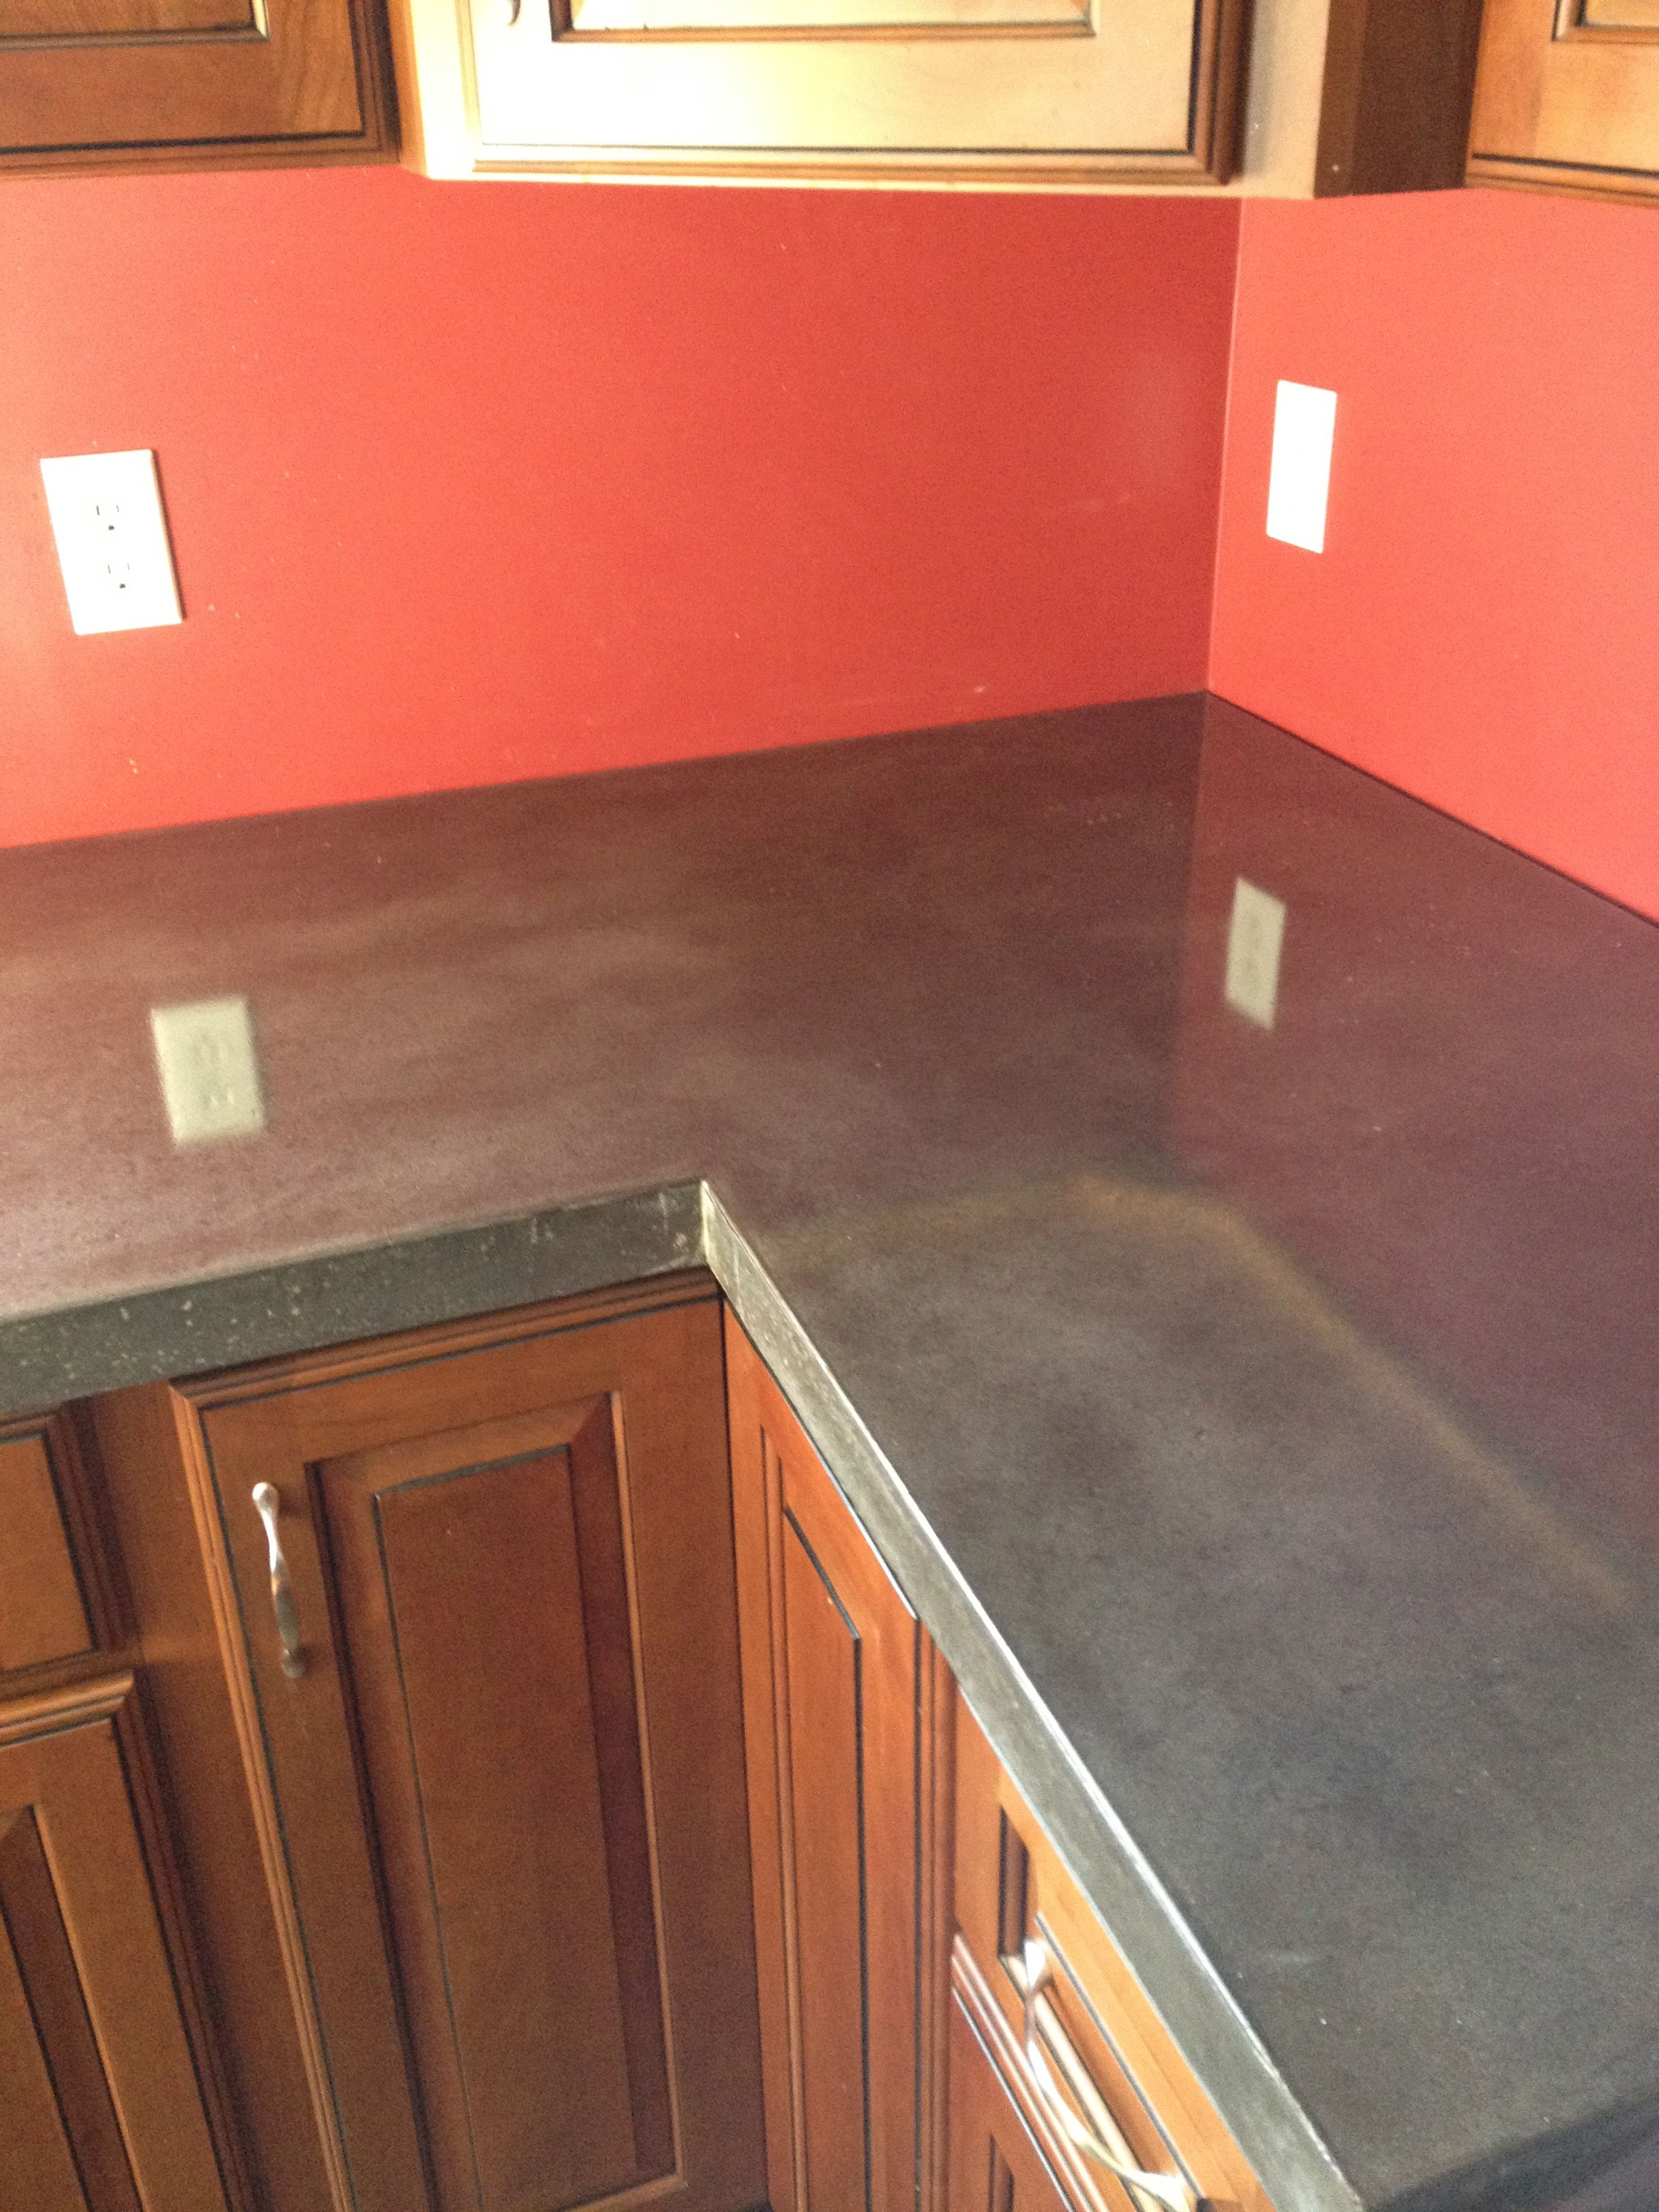 Polished Concrete Countertops | Decorative Concrete of Virginia (VA)